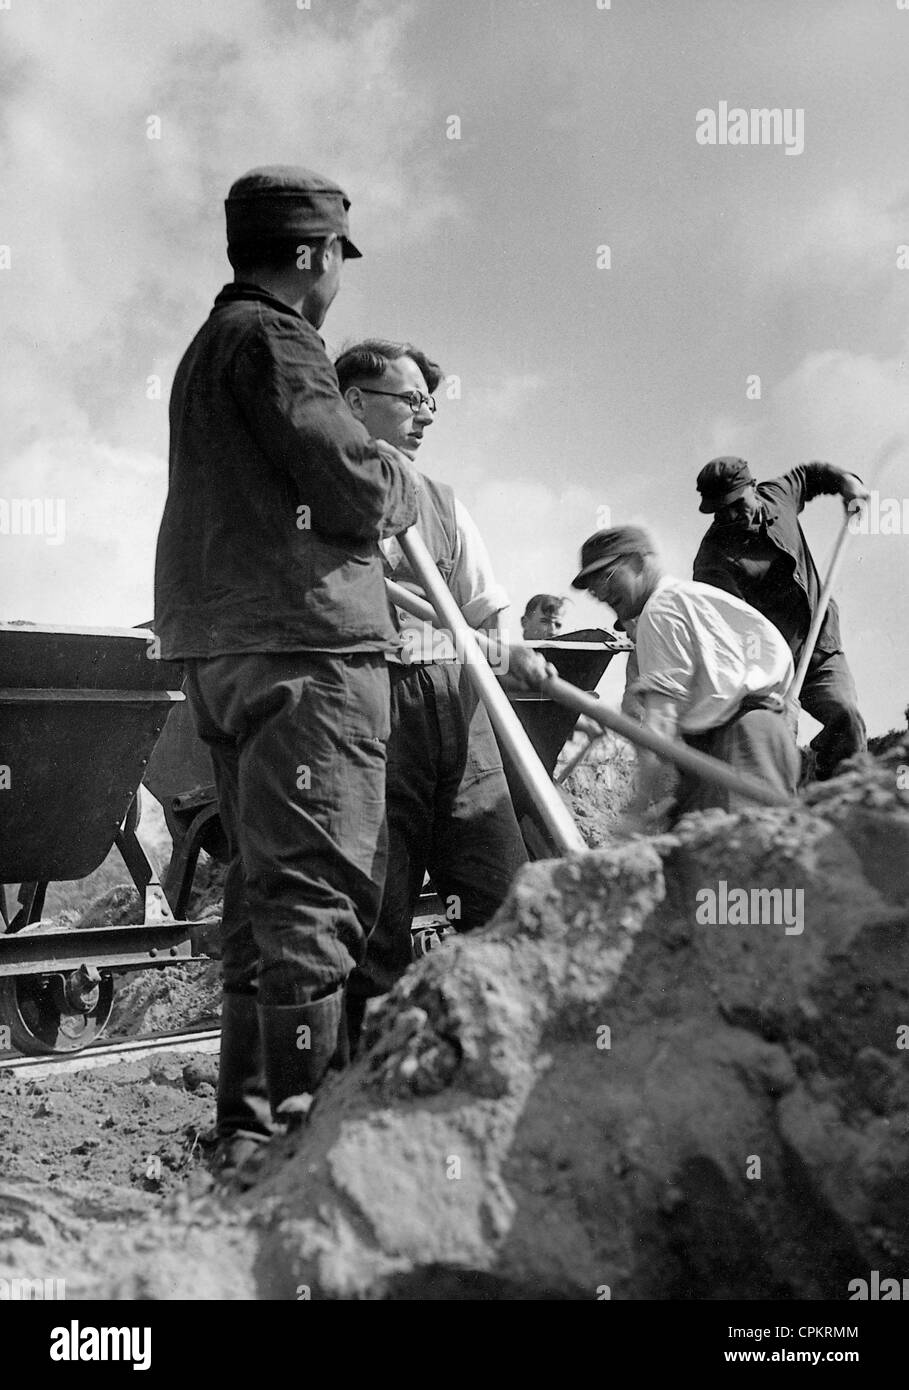 Members of the Reich Labour Service [Reichsarbeitsdienst, RAD] - Stock Image